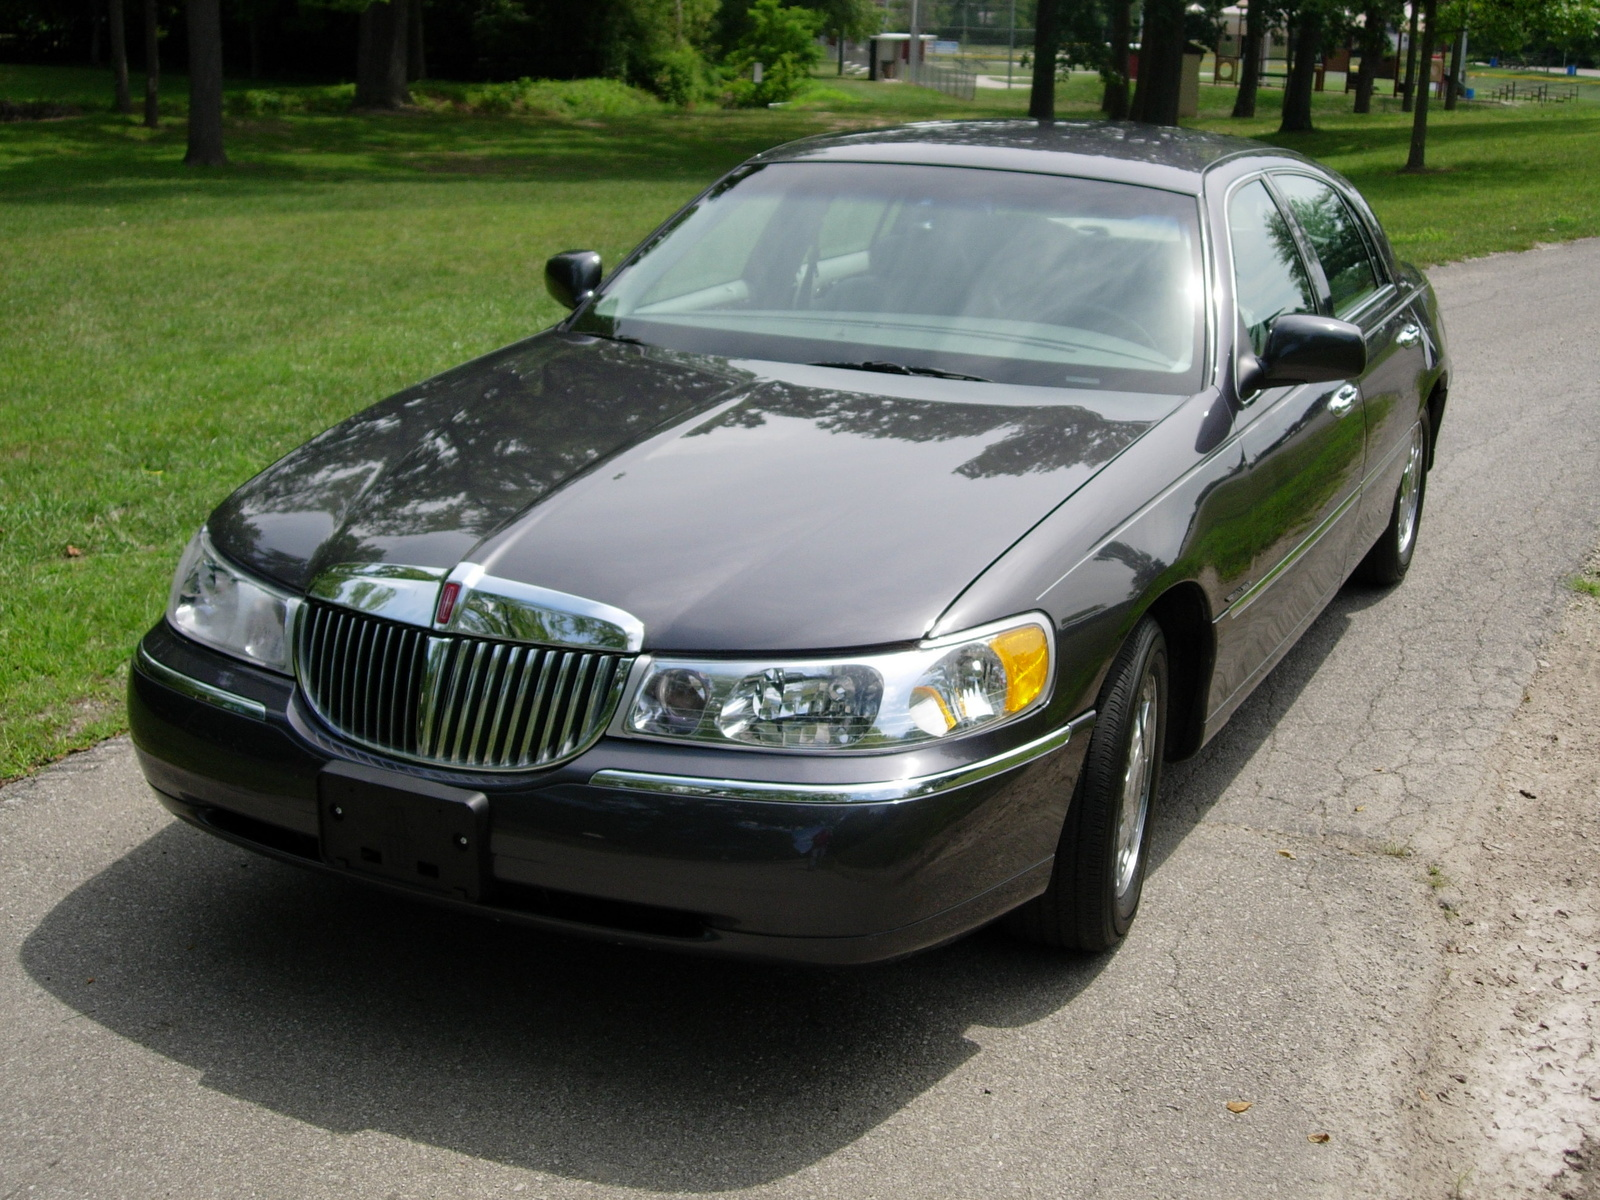 hight resolution of cadillac seville compare picture of 1998 lincoln town car executive exterior gallery worthy